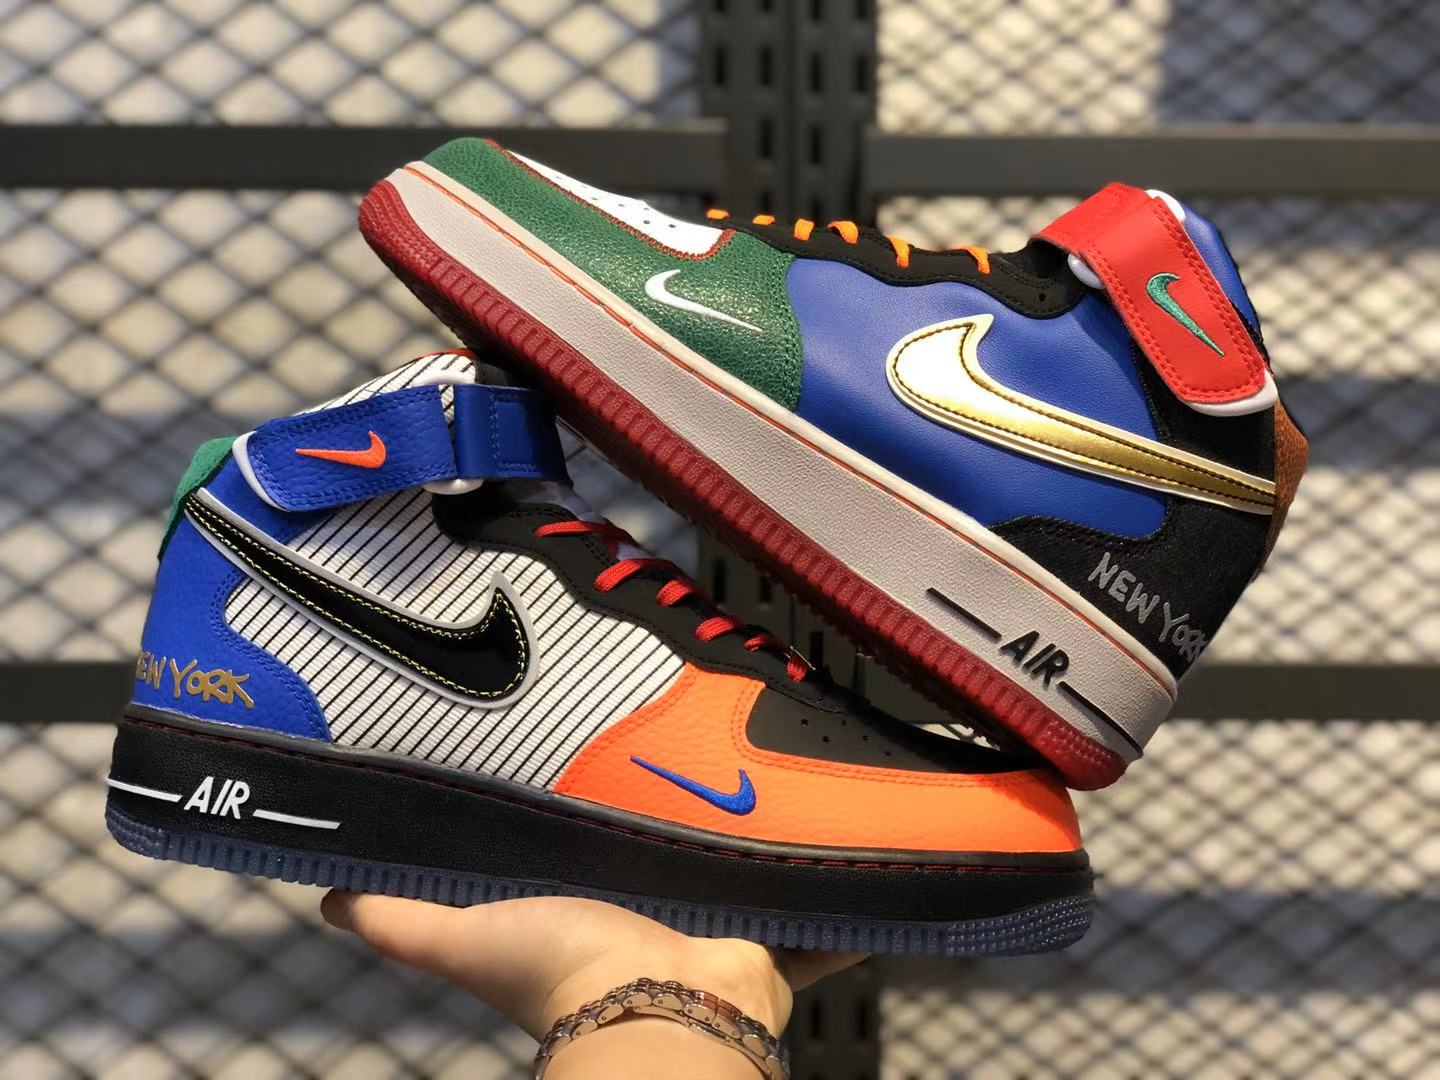 Nike Air‌ Force 1 Mid‌ Orange/Multi-Color-Rainbow Life Classic Shoes To Buy